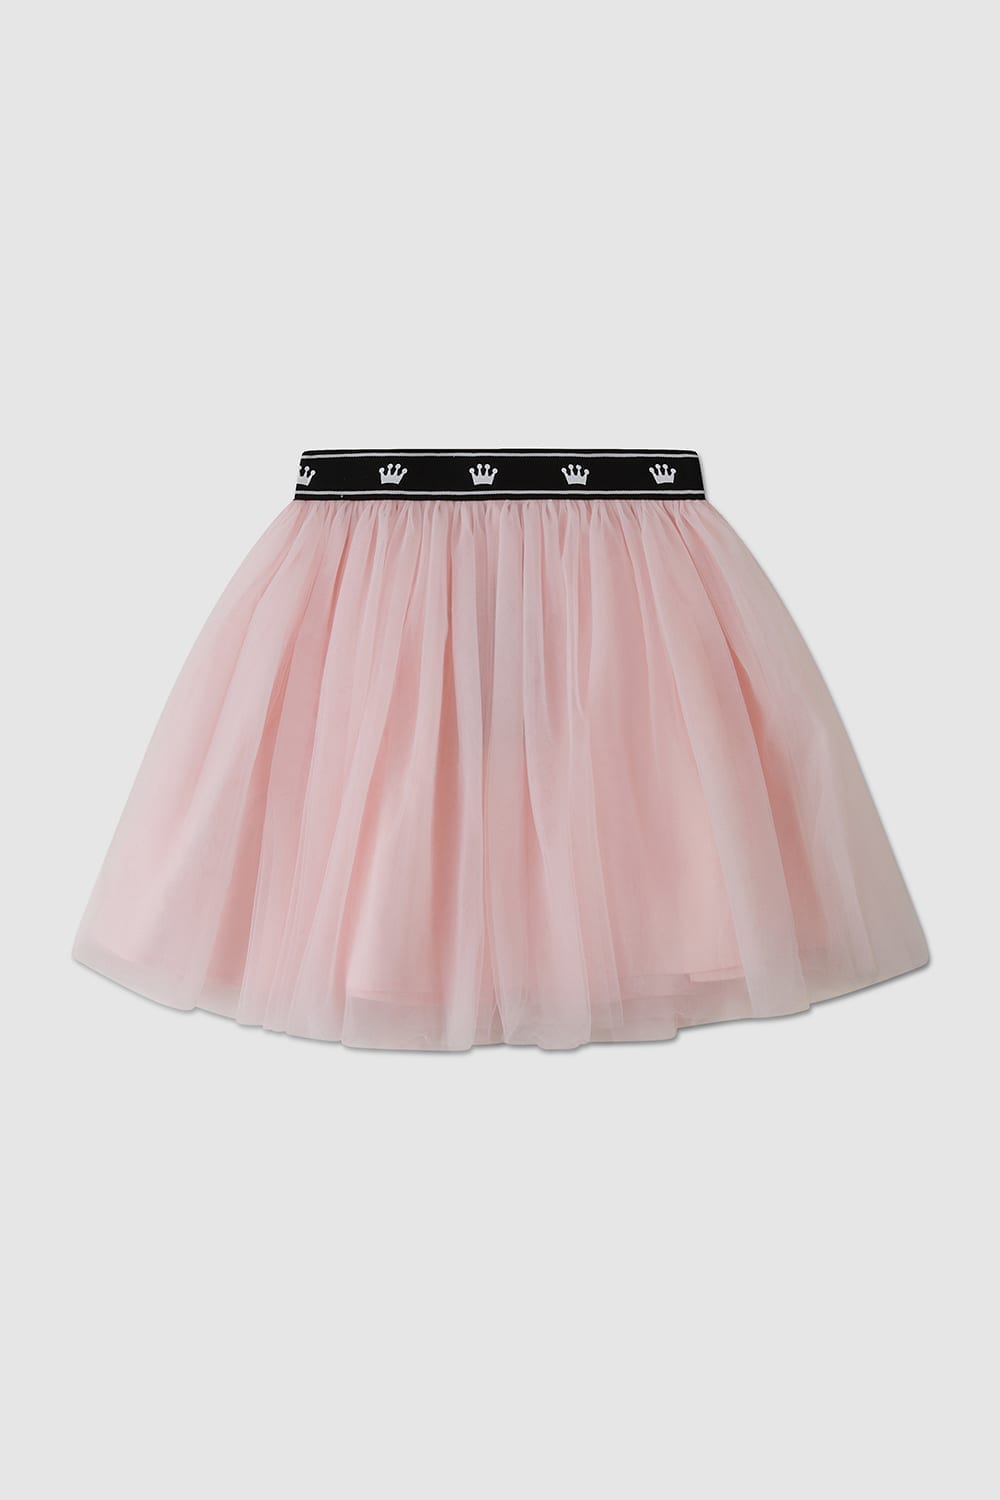 Lil Tutu Front Pink Front